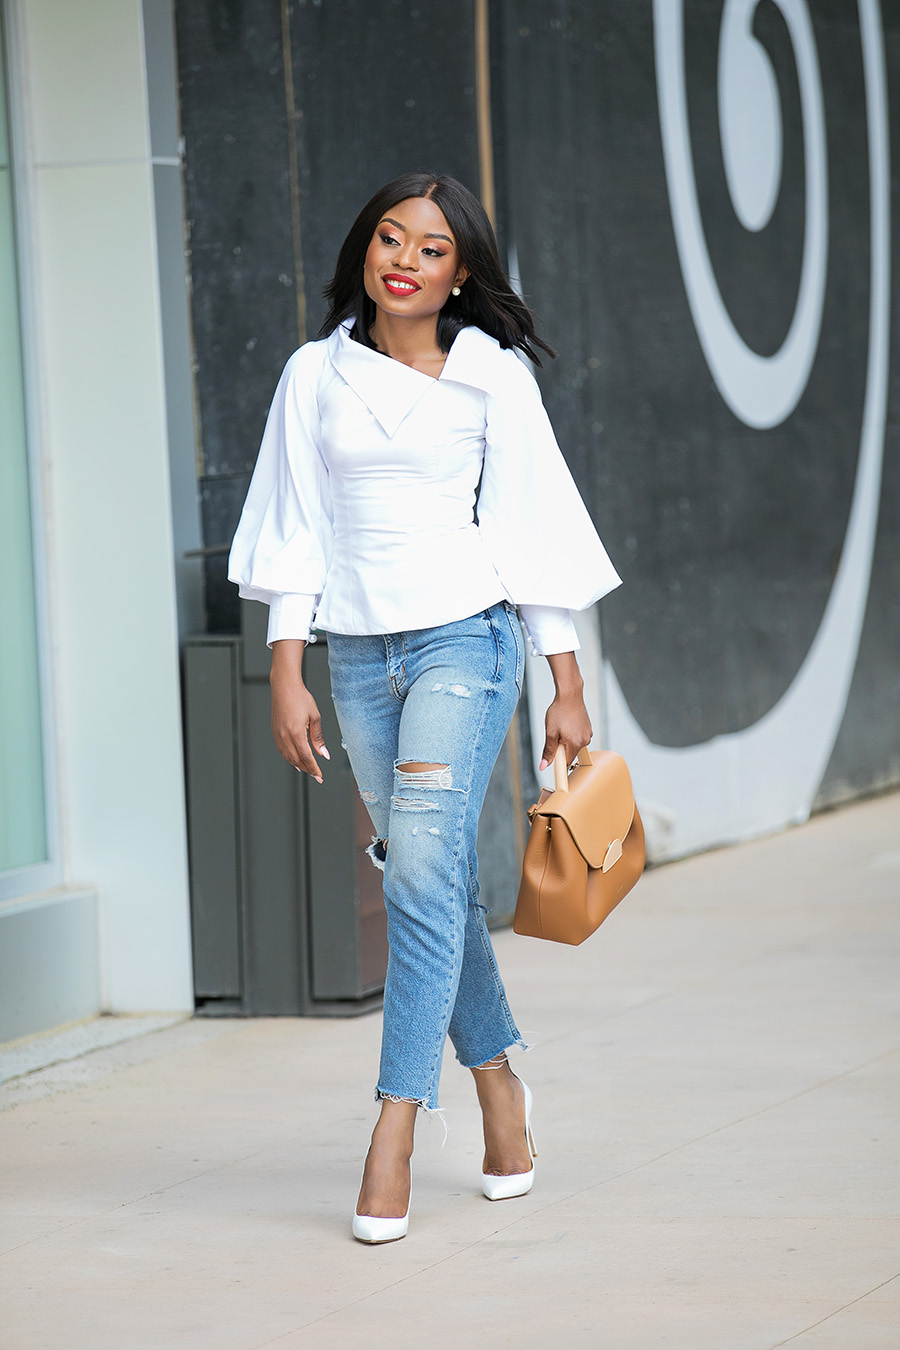 weekend style in jeans, www.jadore-fashion.com